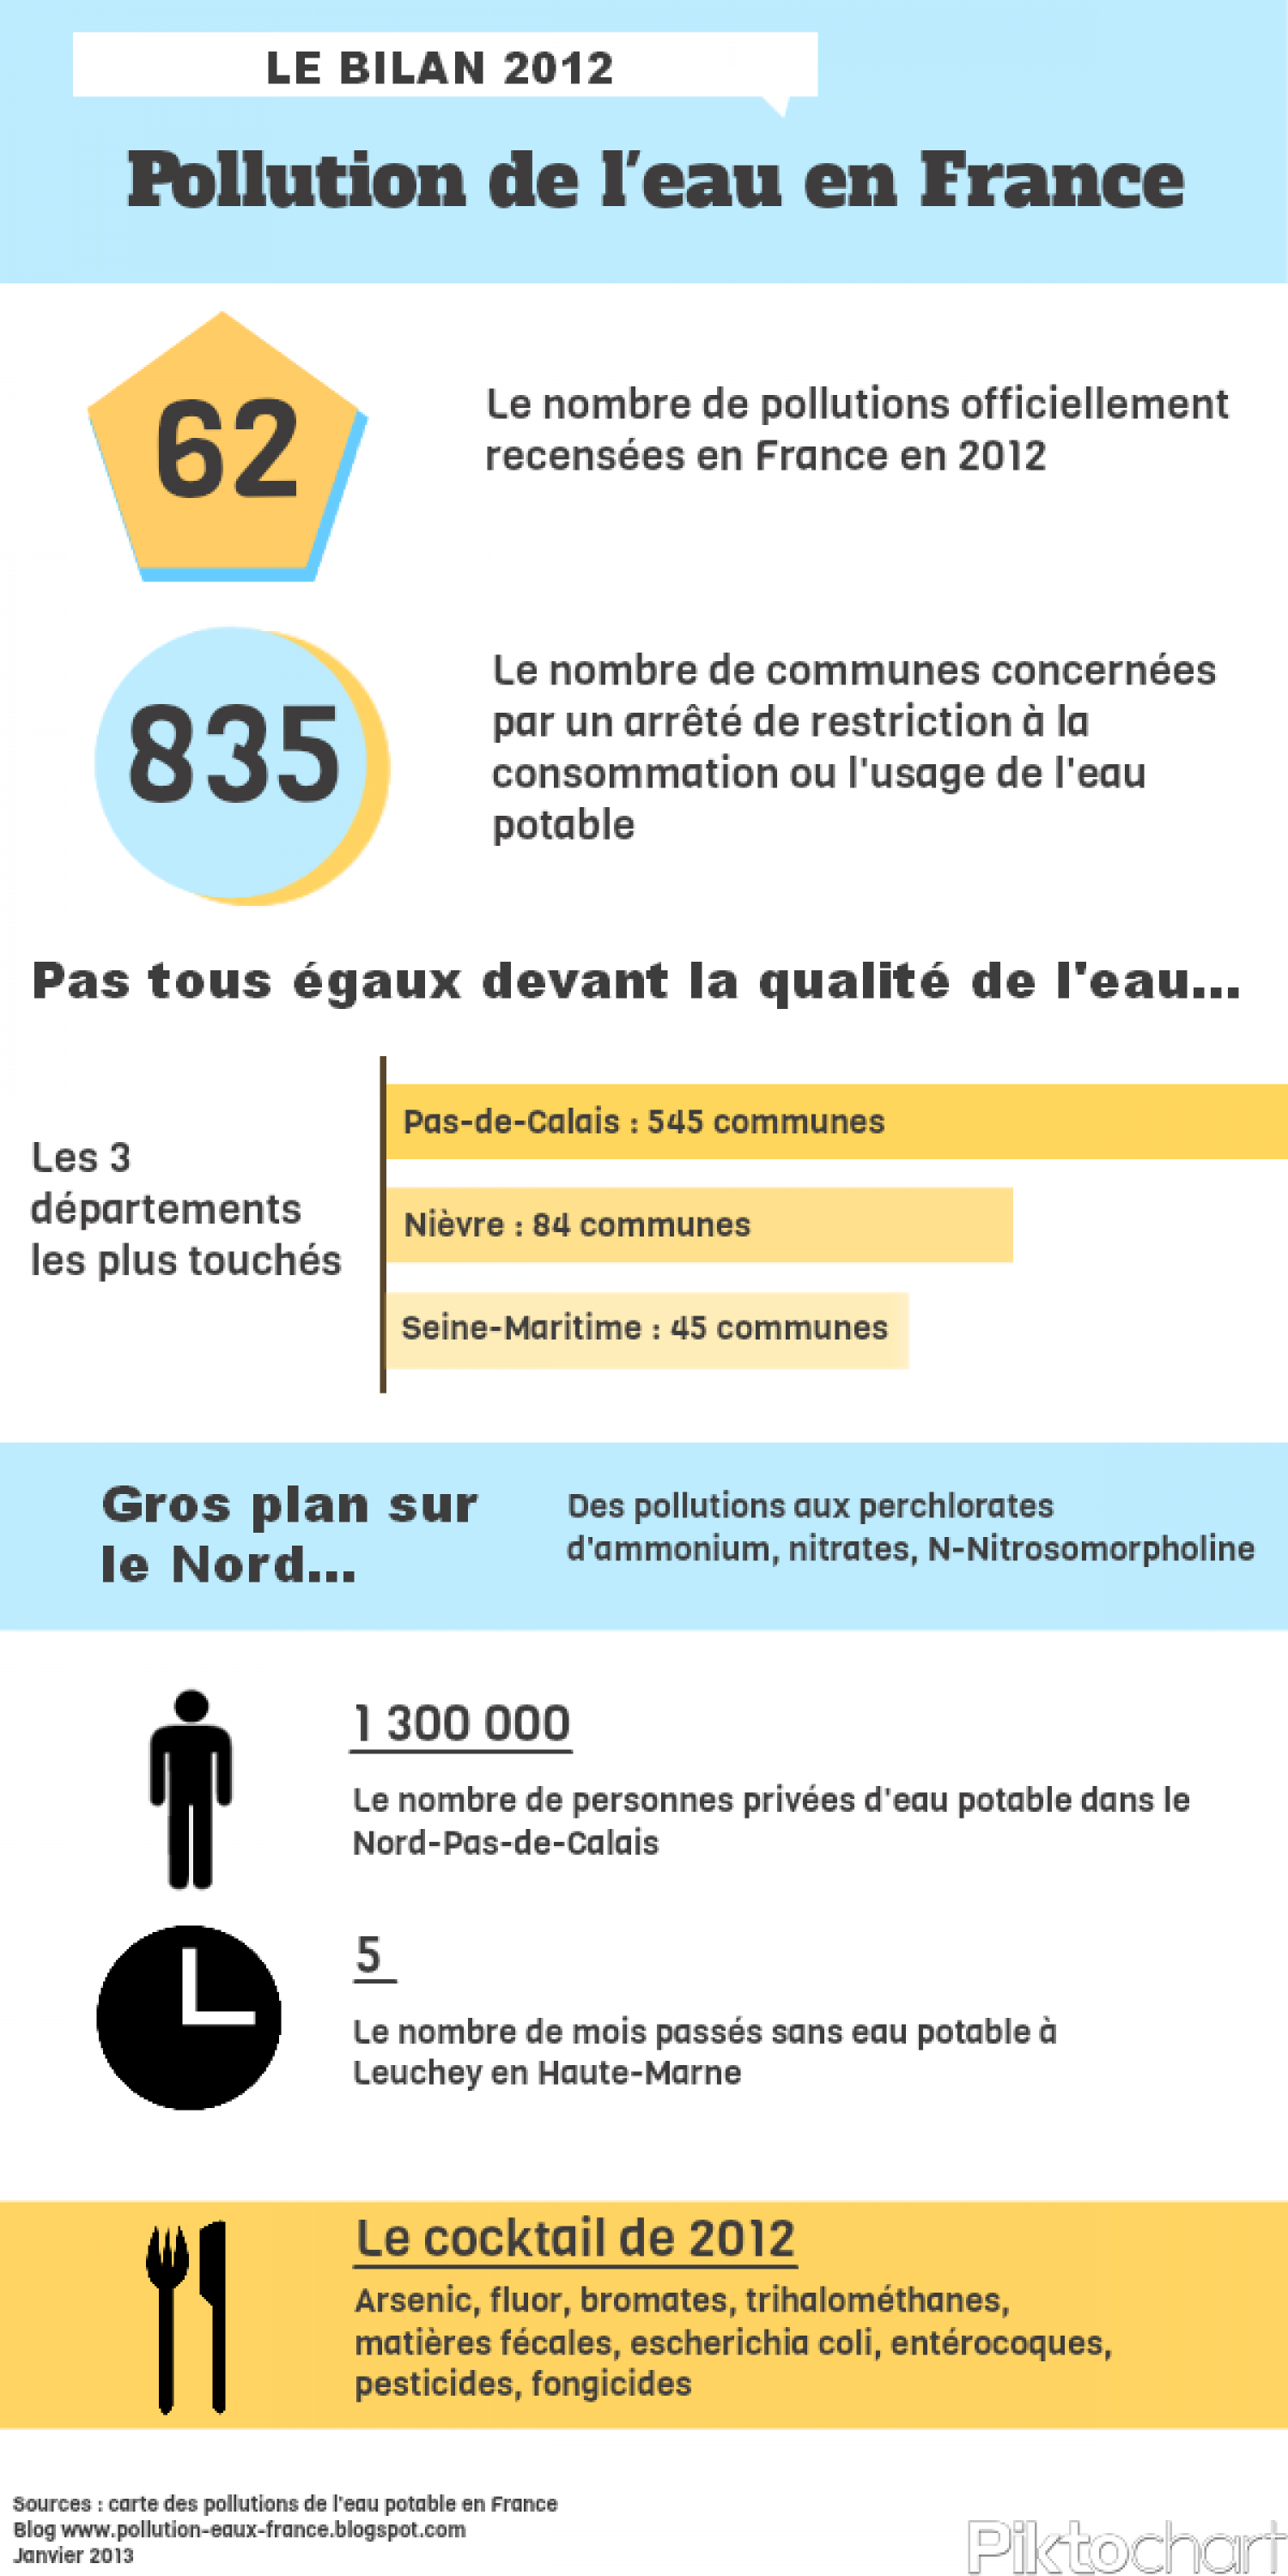 Bilan sur la pollution de l'eau potable en 2012 Infographic